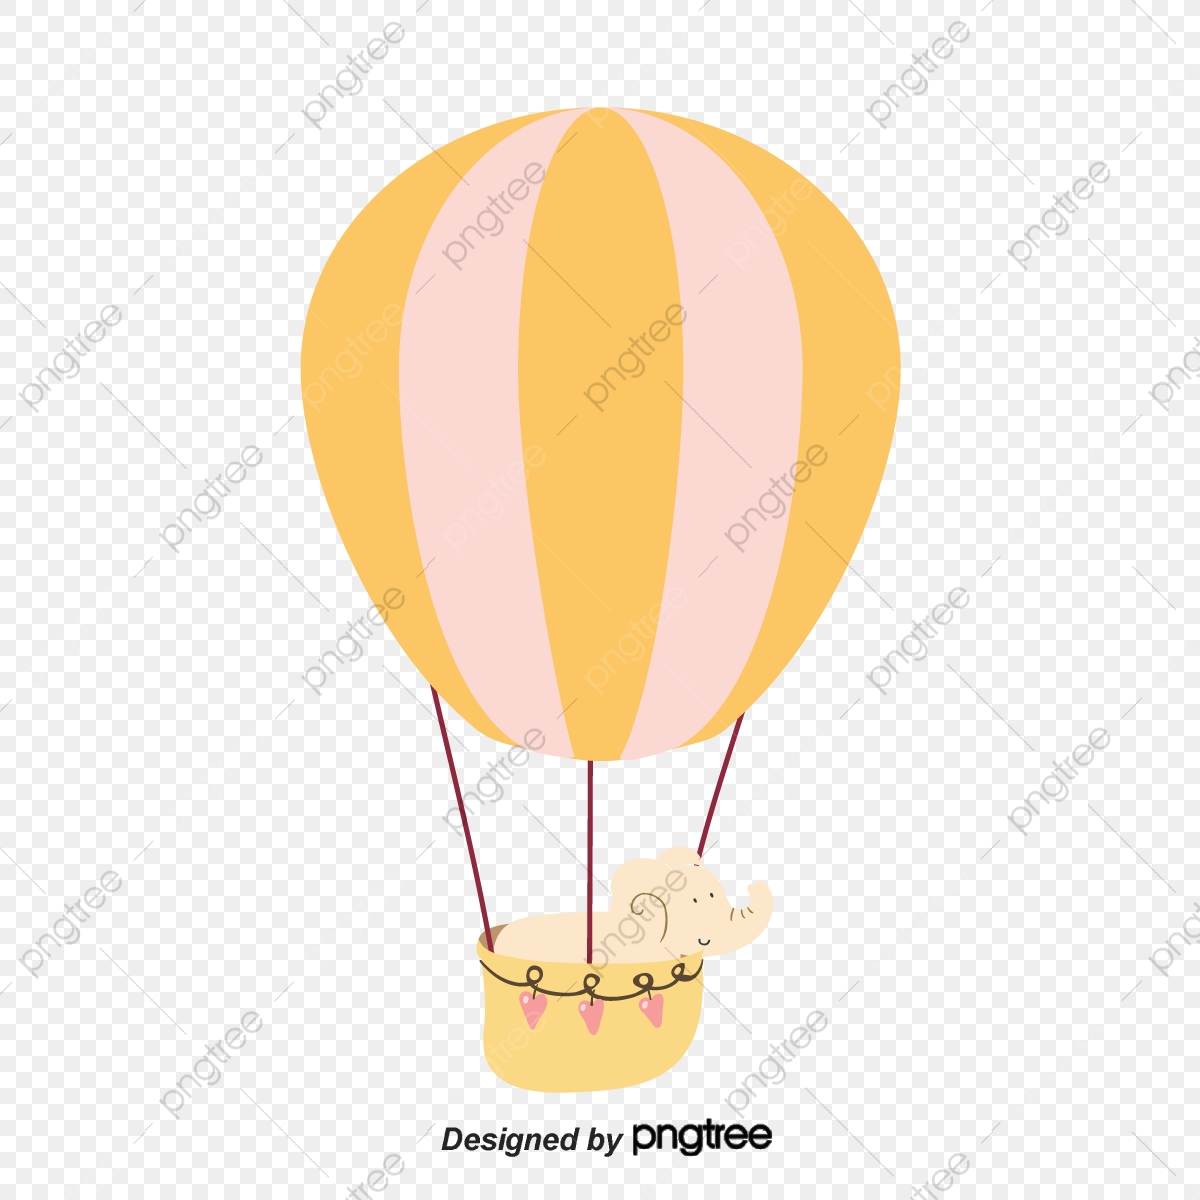 hight resolution of elephant riding and hot air balloon gratis png y psd